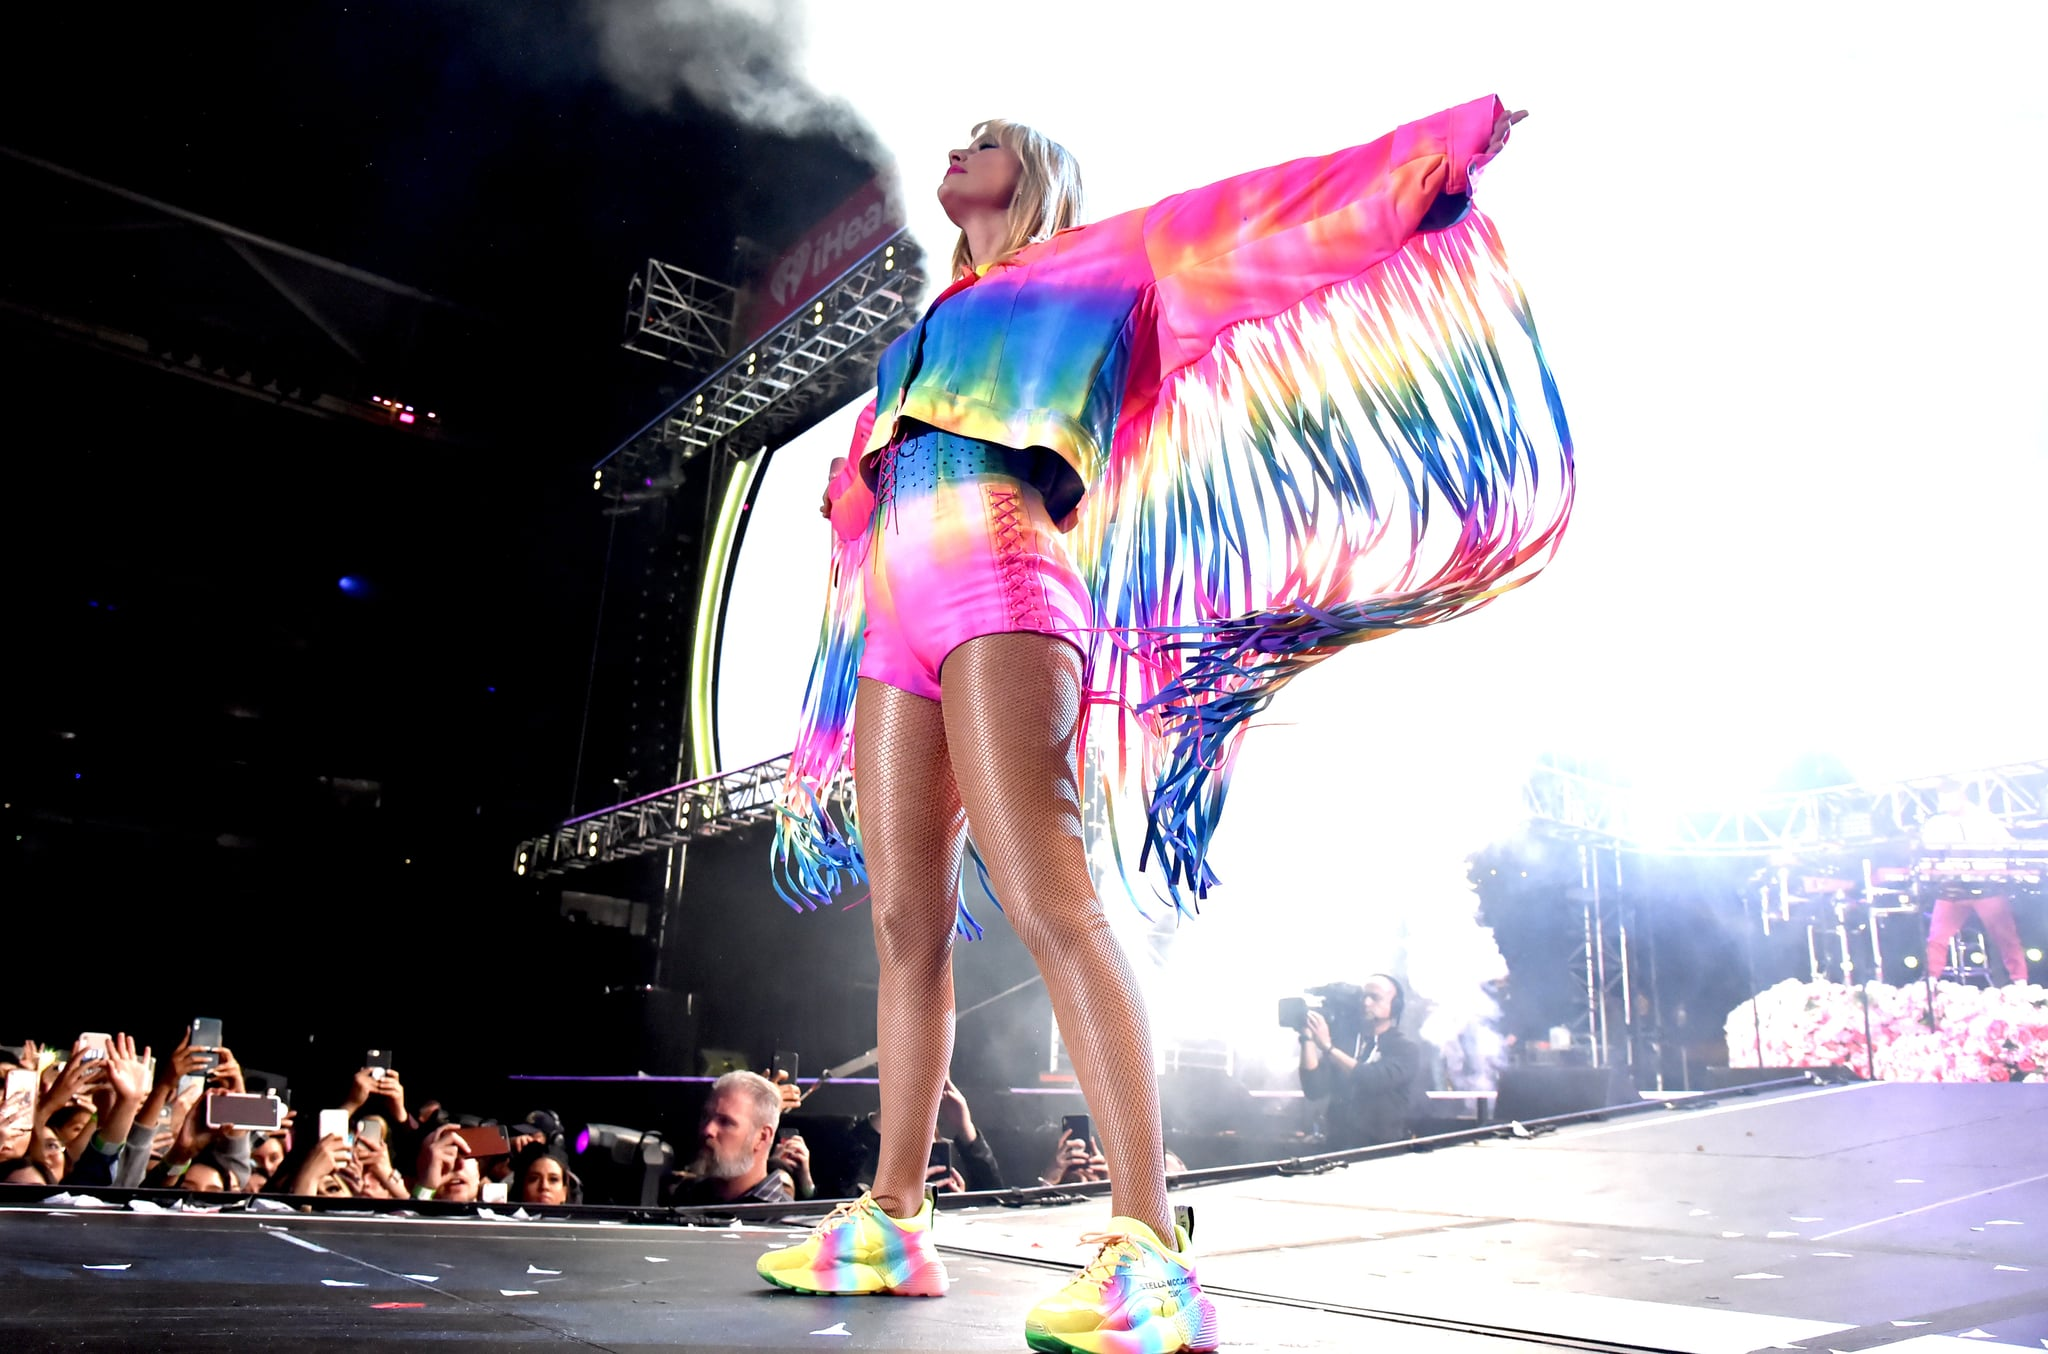 CARSON, CALIFORNIA - JUNE 01: (EDITORIAL USE ONLY. NO COMMERCIAL USE) Taylor Swift performs onstage at 2019 iHeartRadio Wango Tango presented by The JUVÉDERM® Collection of Dermal Fillers at Dignity Health Sports Park on June 01, 2019 in Carson, California. (Photo by Jeff Kravitz/FilmMagic for iHeartMedia)